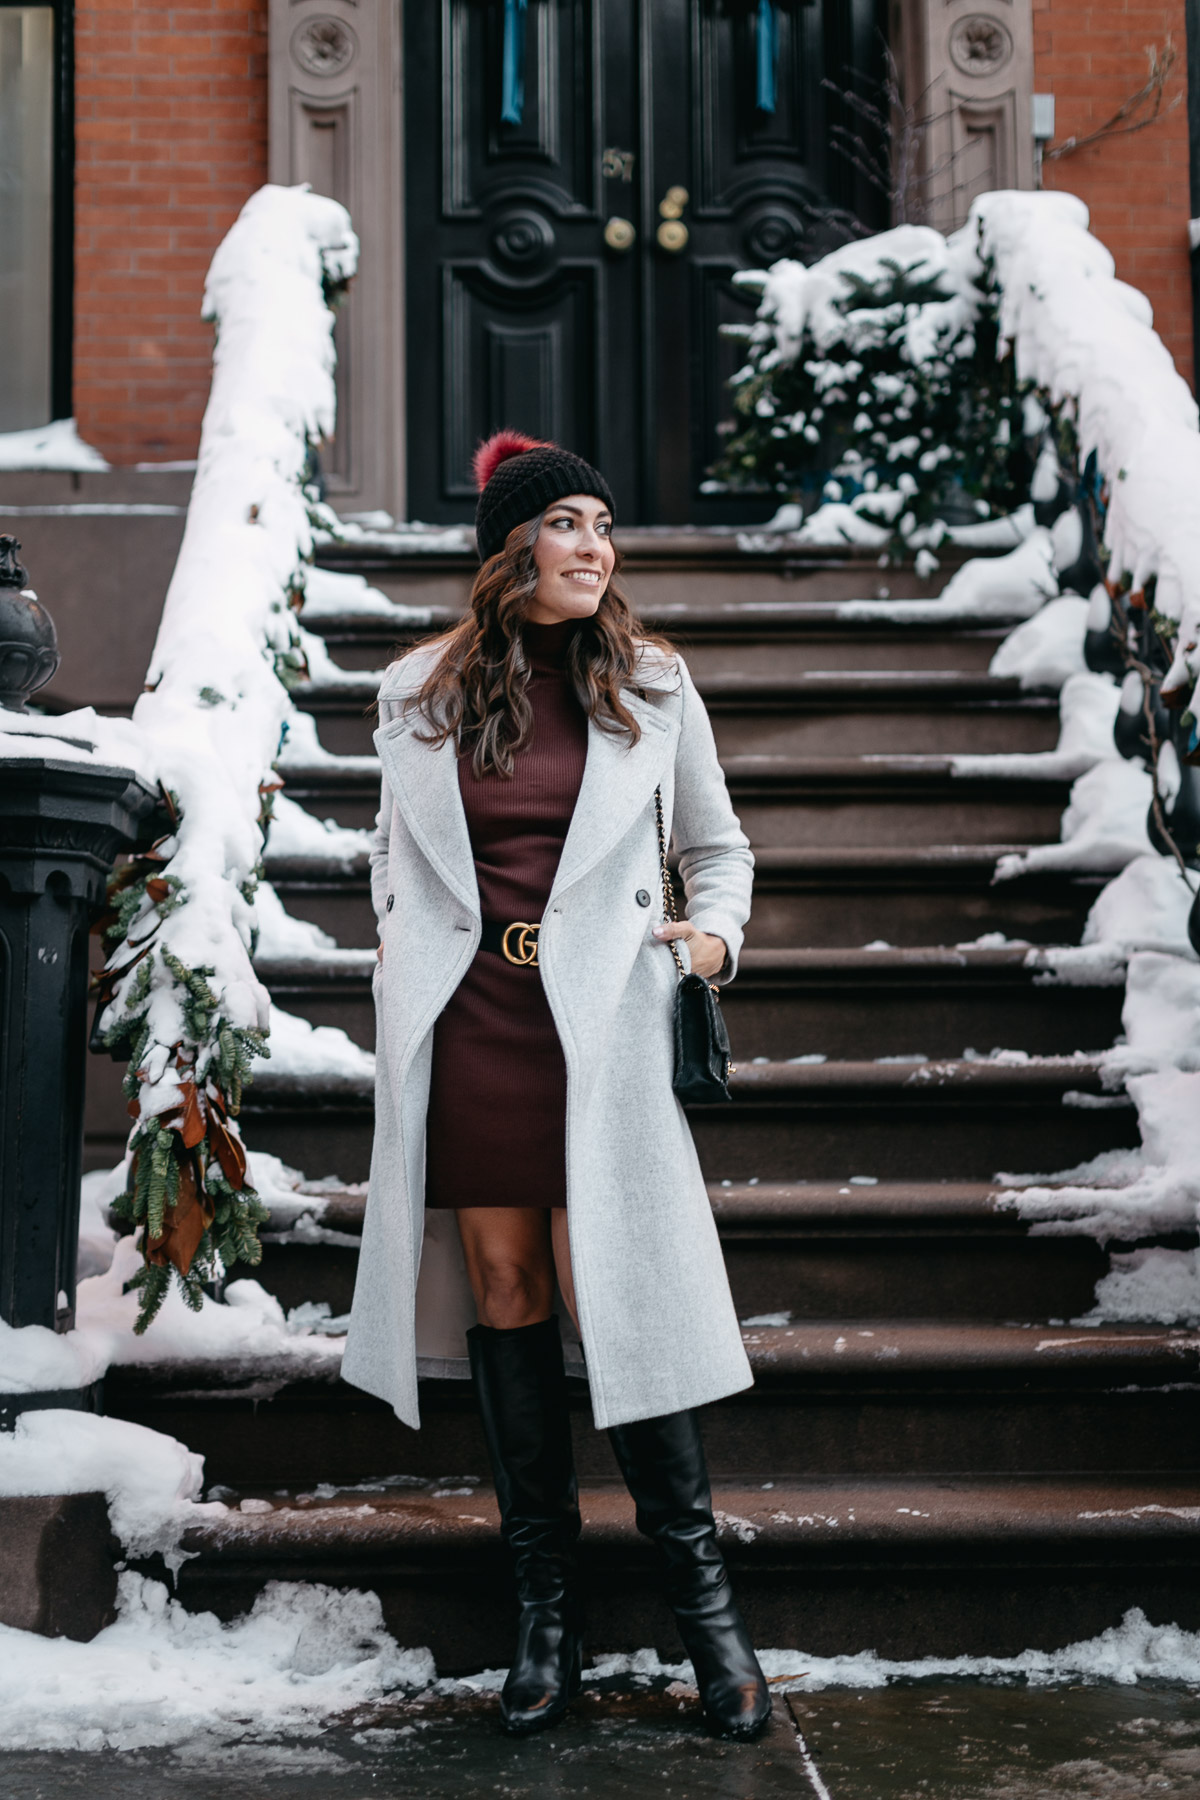 525 America Burgundy sweater dress with Gucci double G belt and Club Monaco Daylina coat styled by Amanda from A Glam Lifestyle blog during NYFW Spring 2017